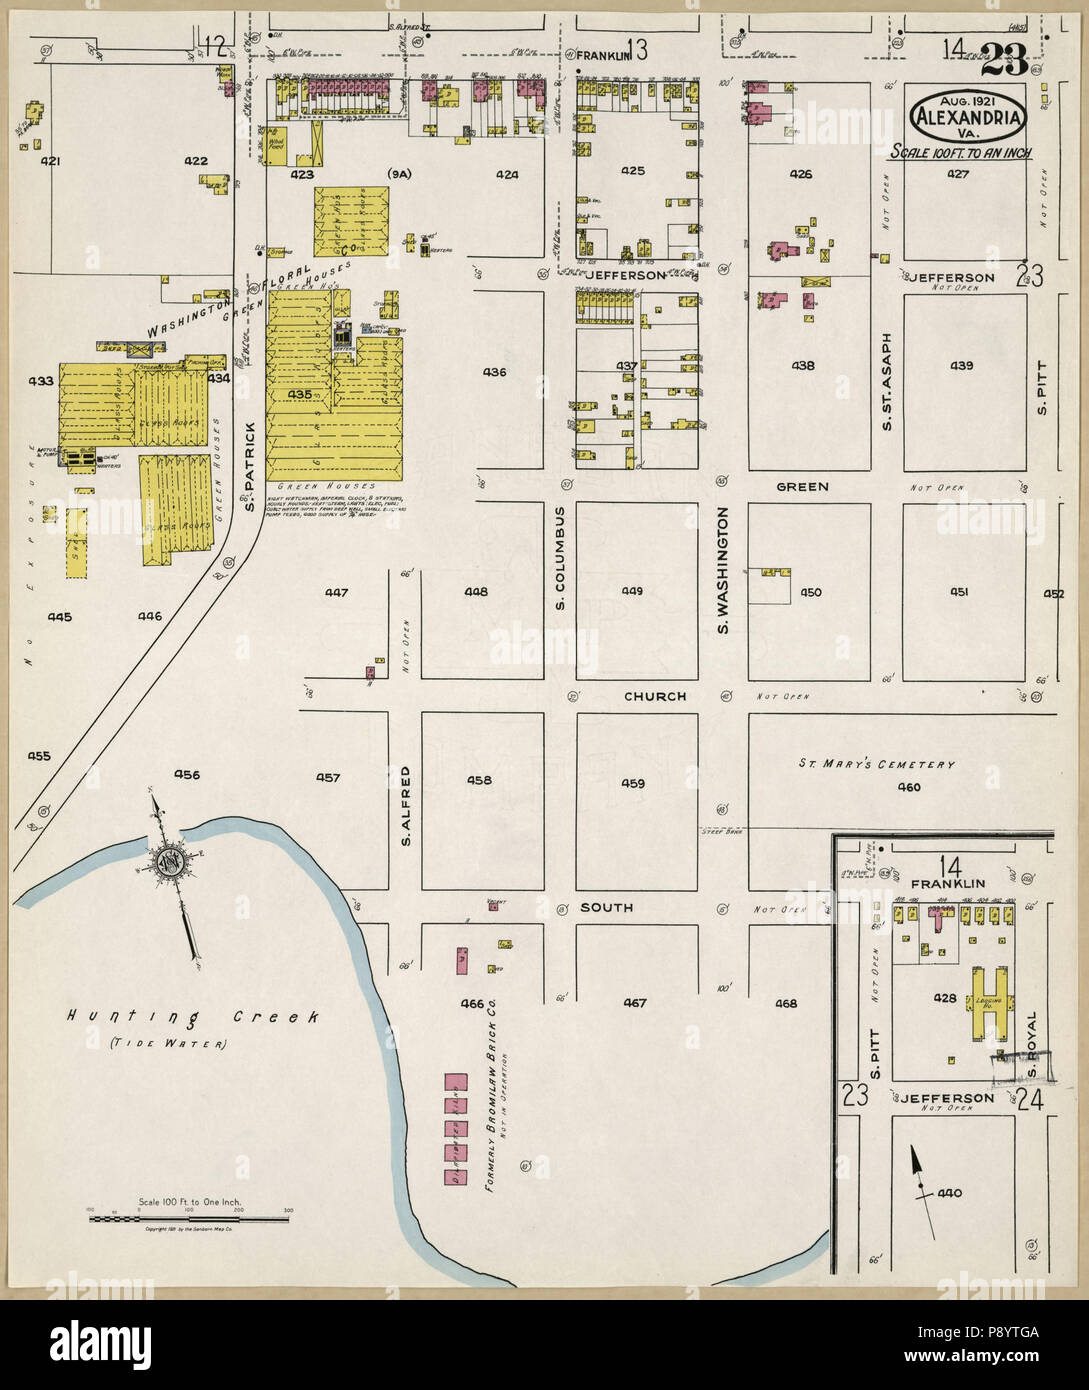 490 Sanborn Fire Insurance Map From Alexandria Independent Cities